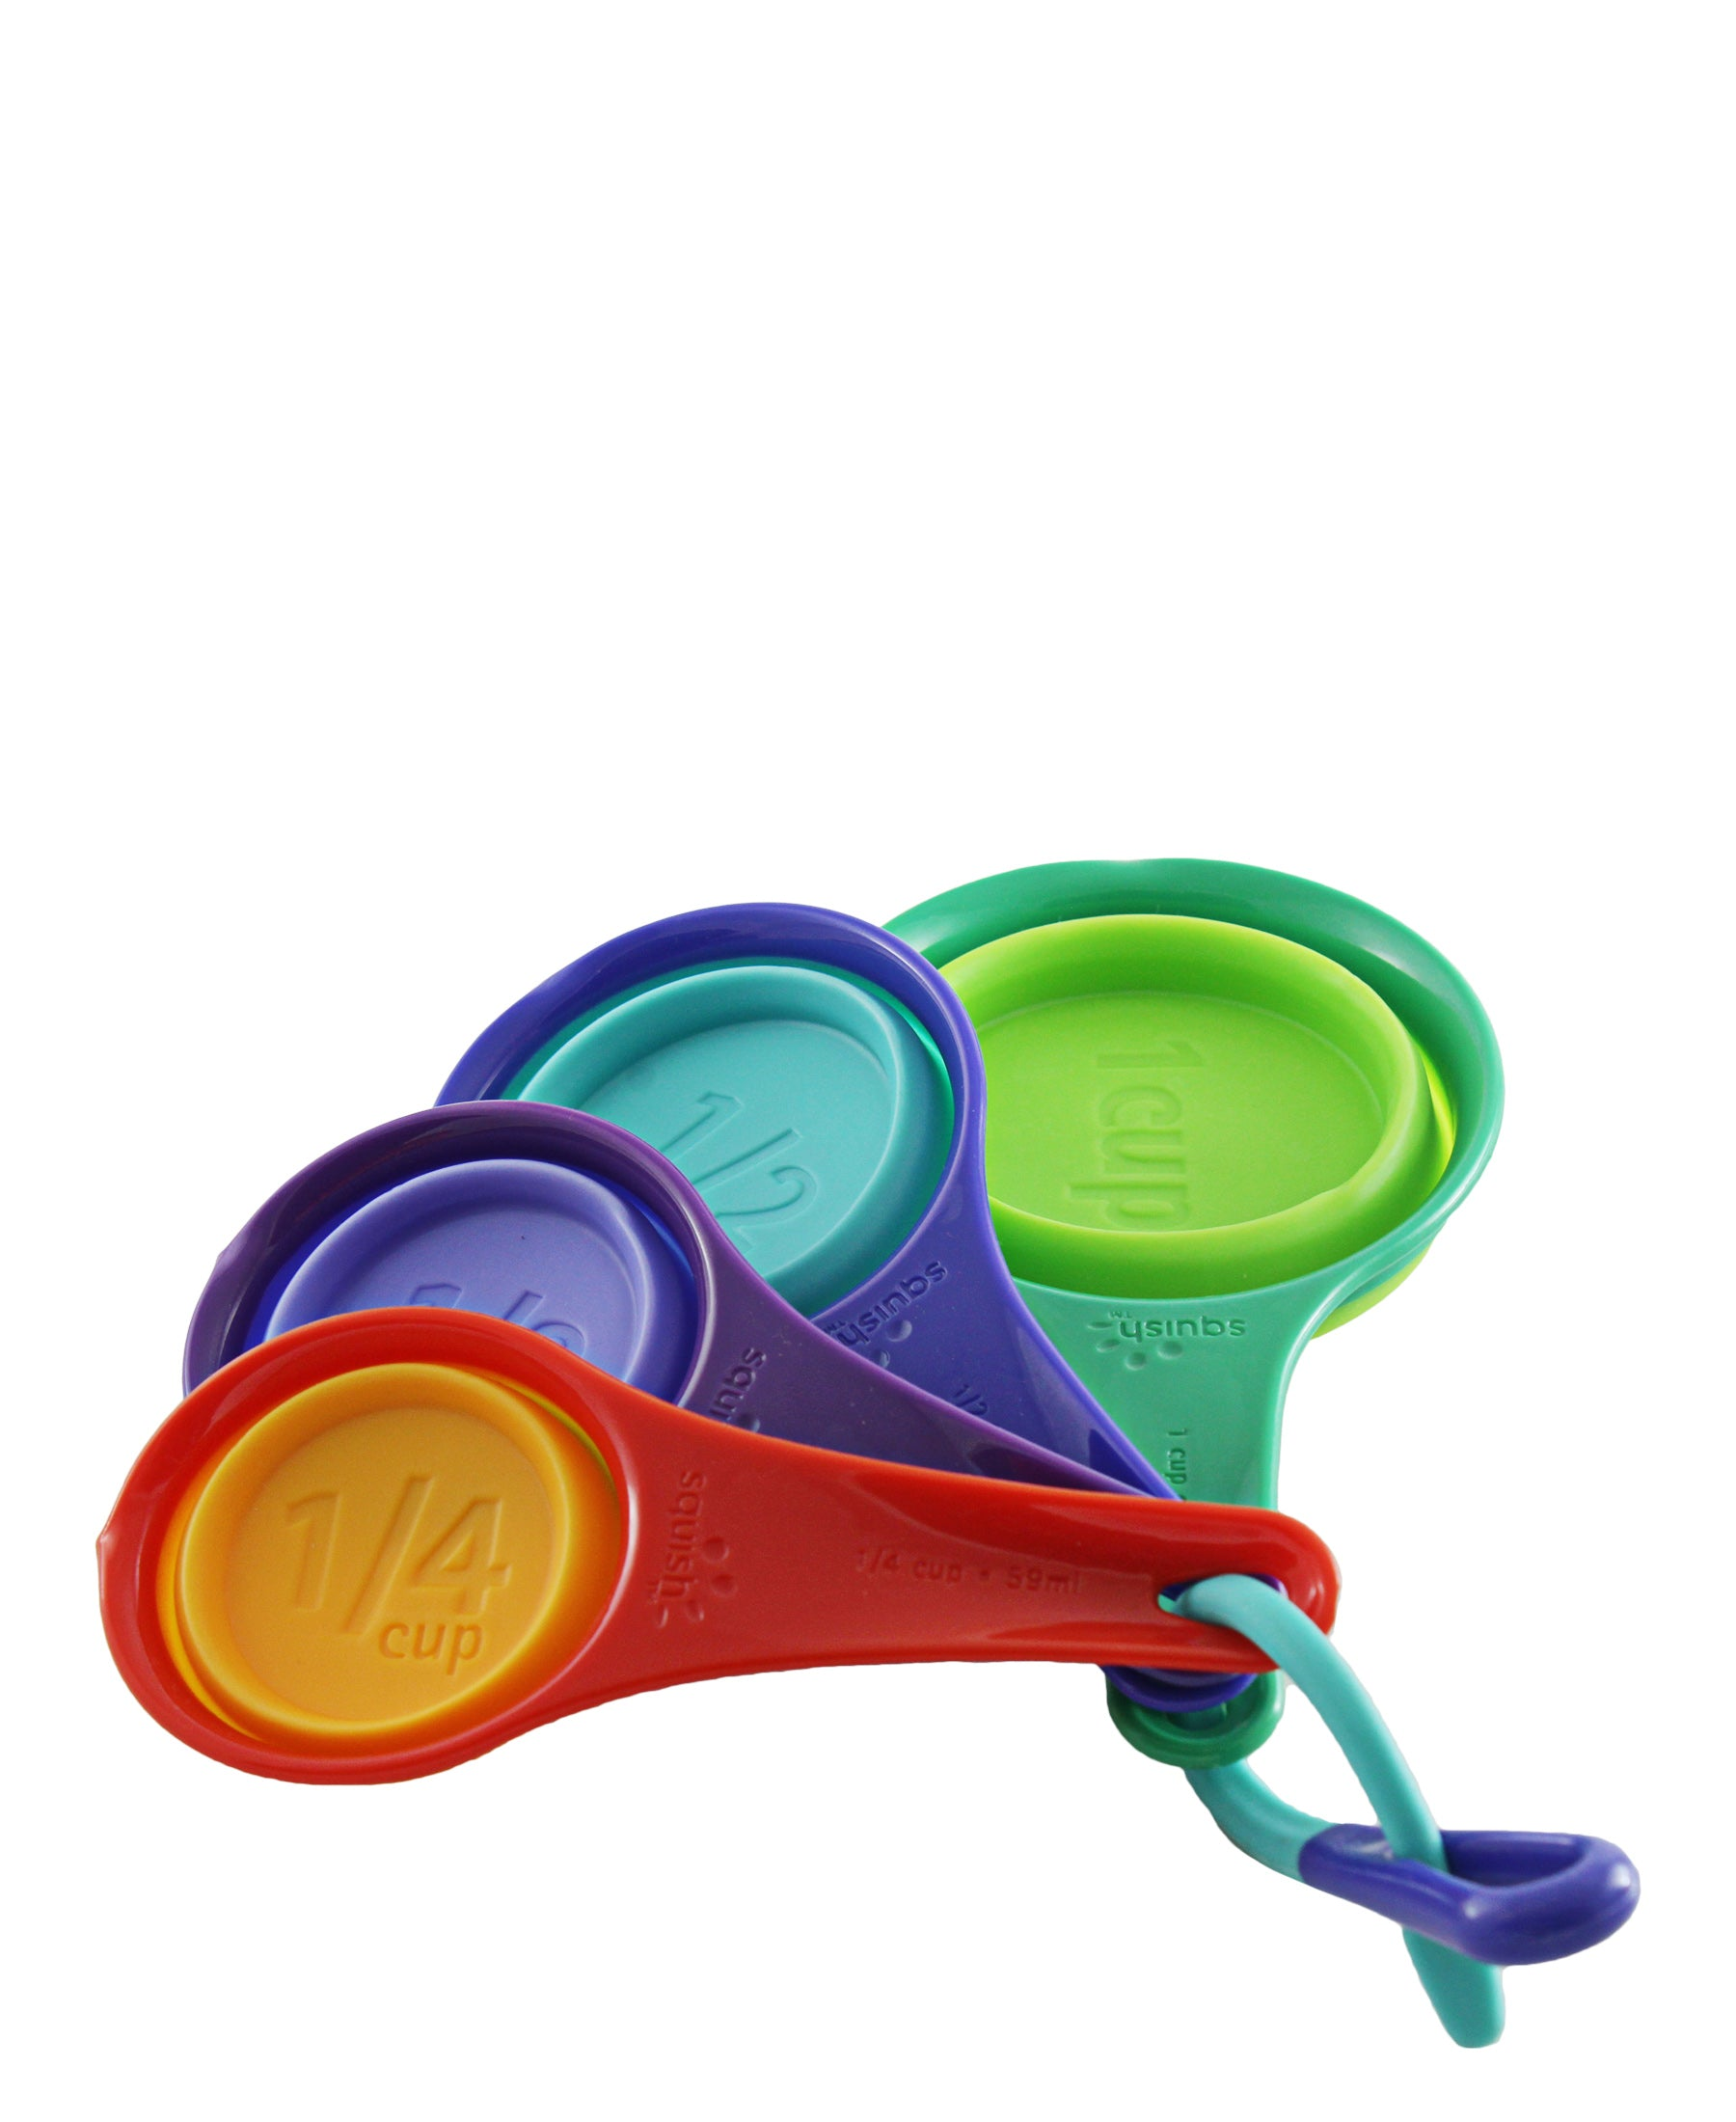 Squish Collapsible Measuring Cups - Multi